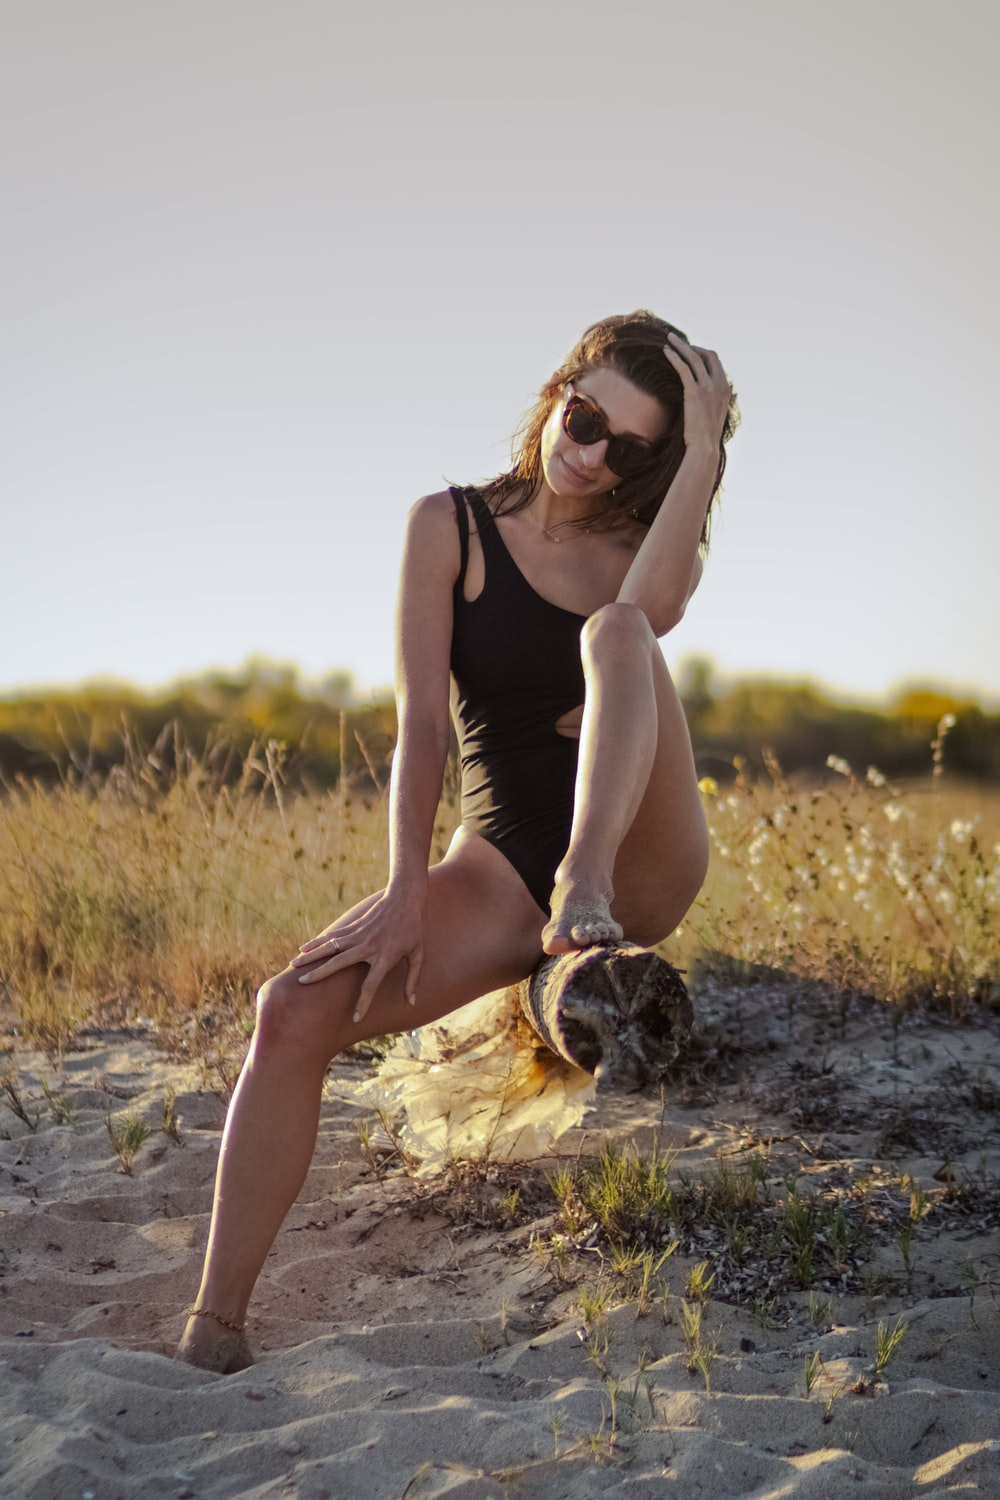 woman in black tank top and brown skirt sitting on brown grass field during daytime